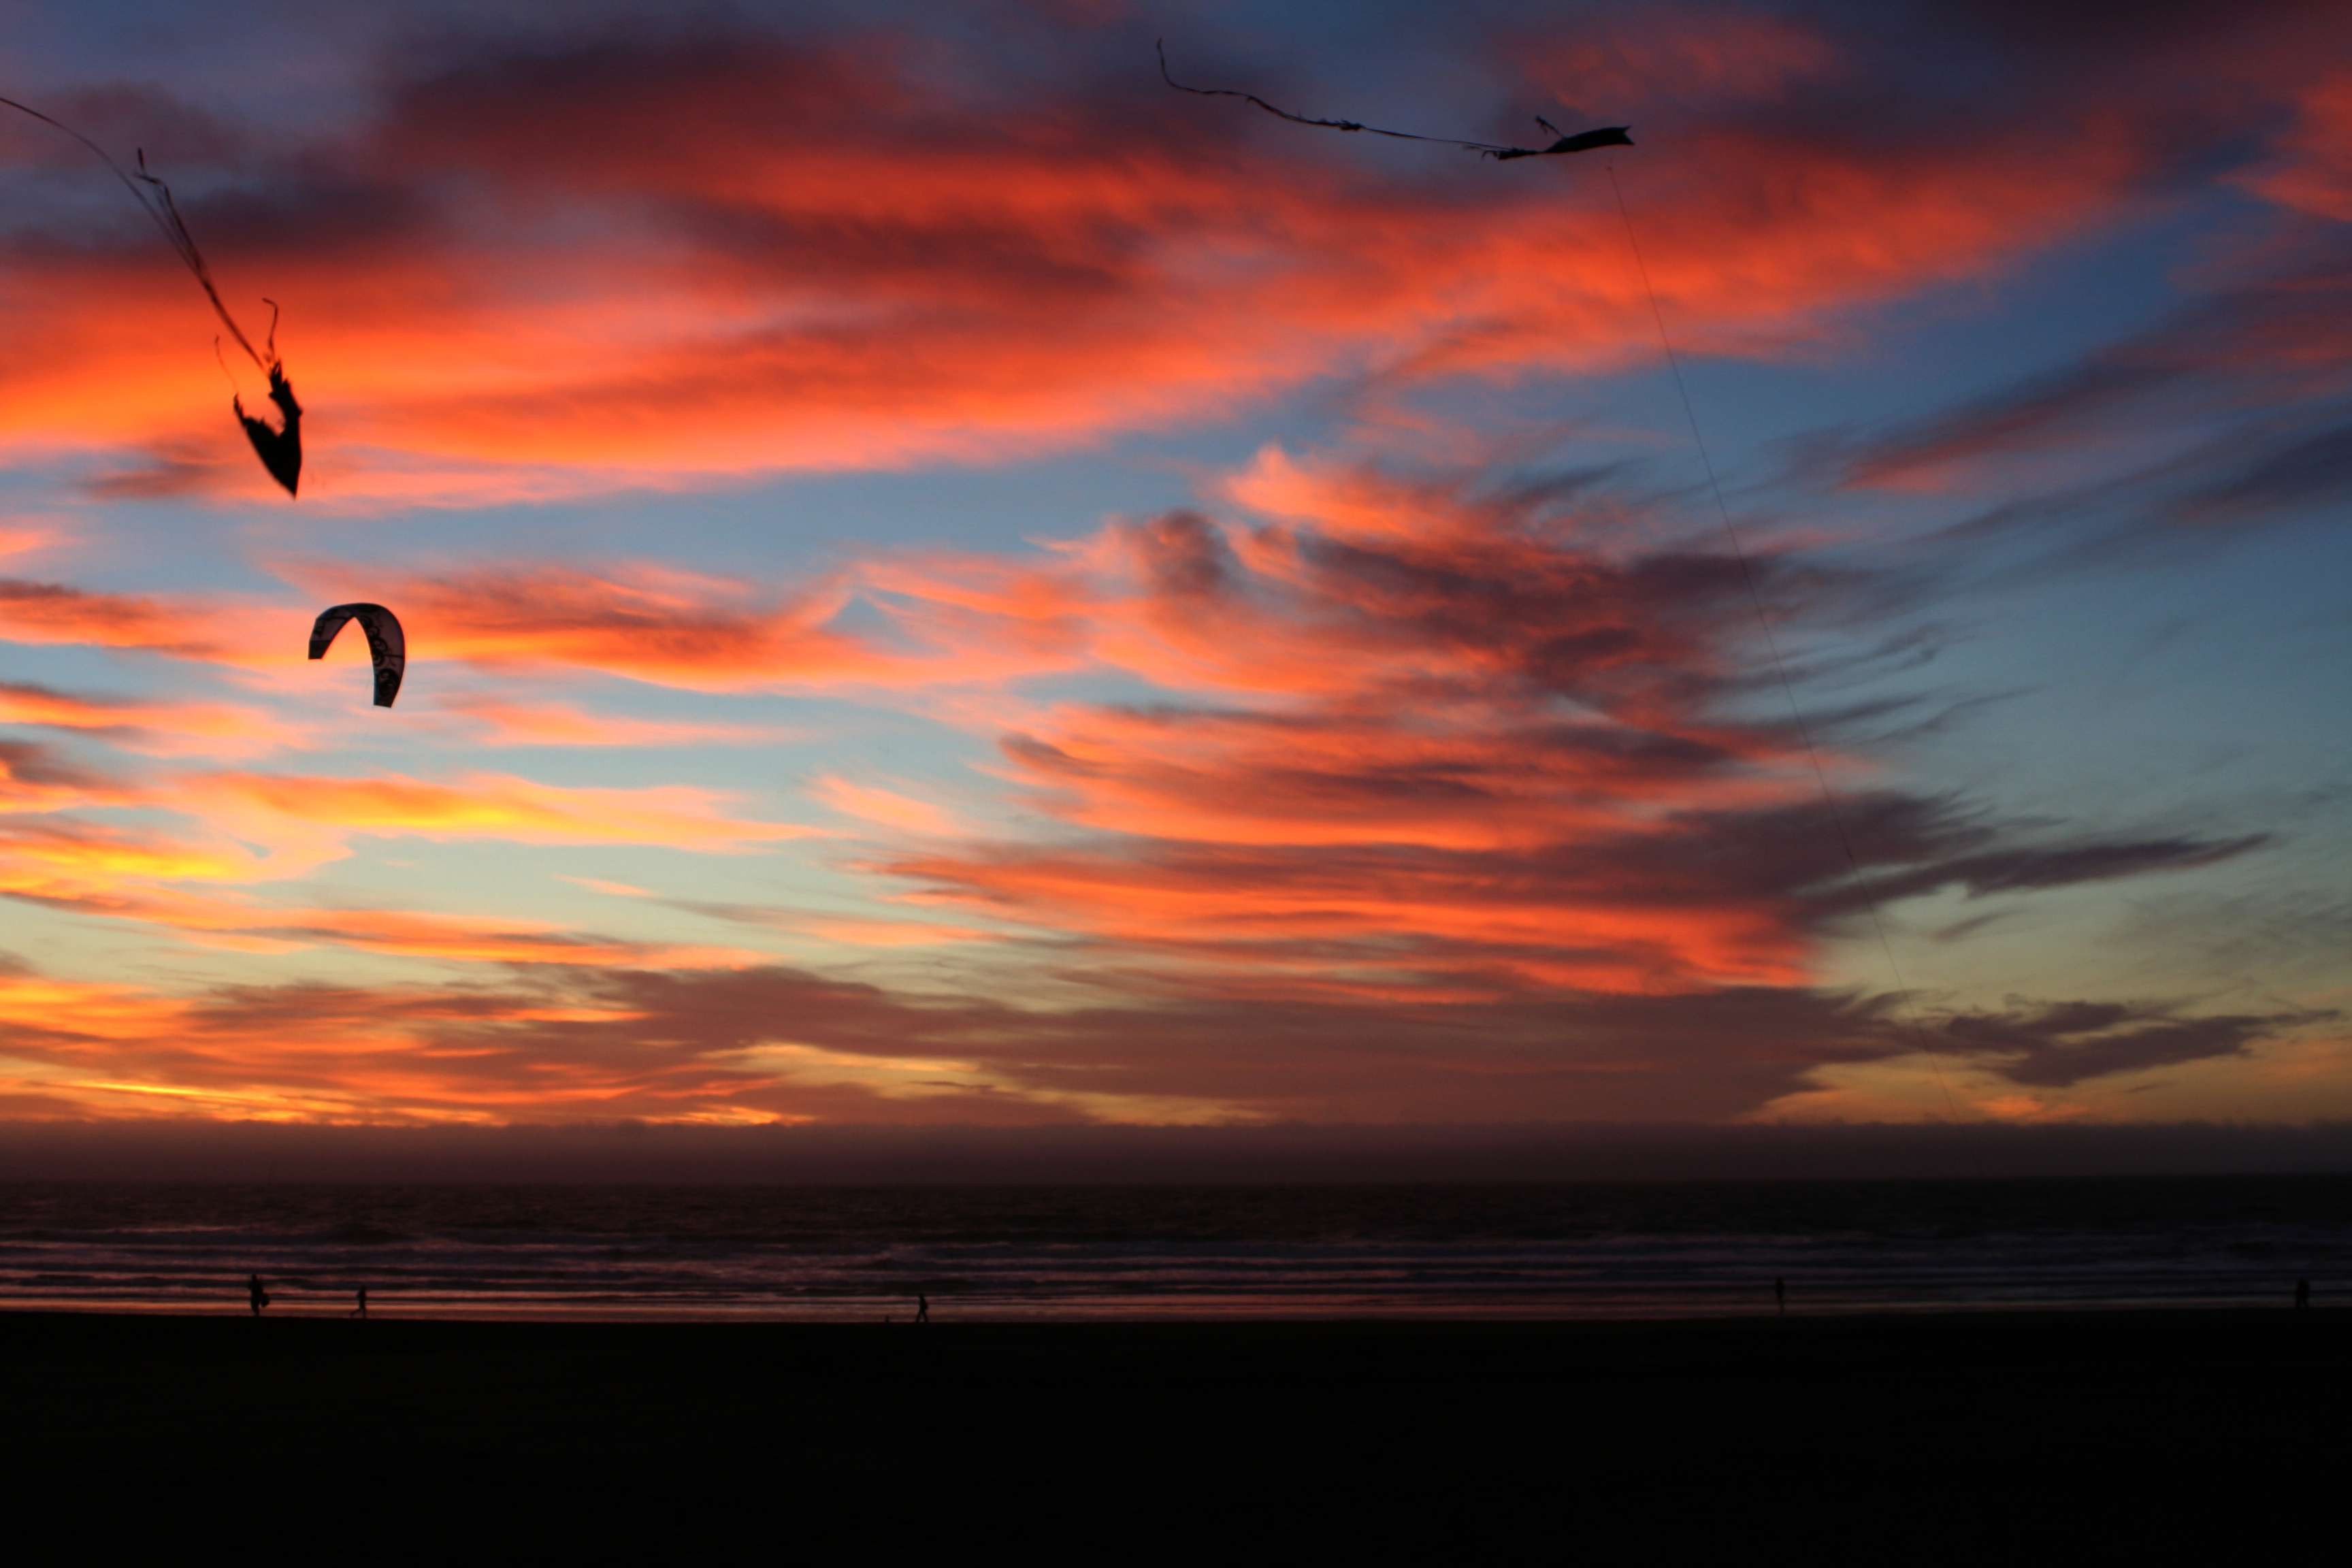 File:Sunset at ocean beach.JPG - Wikipedia, the free encyclopedia